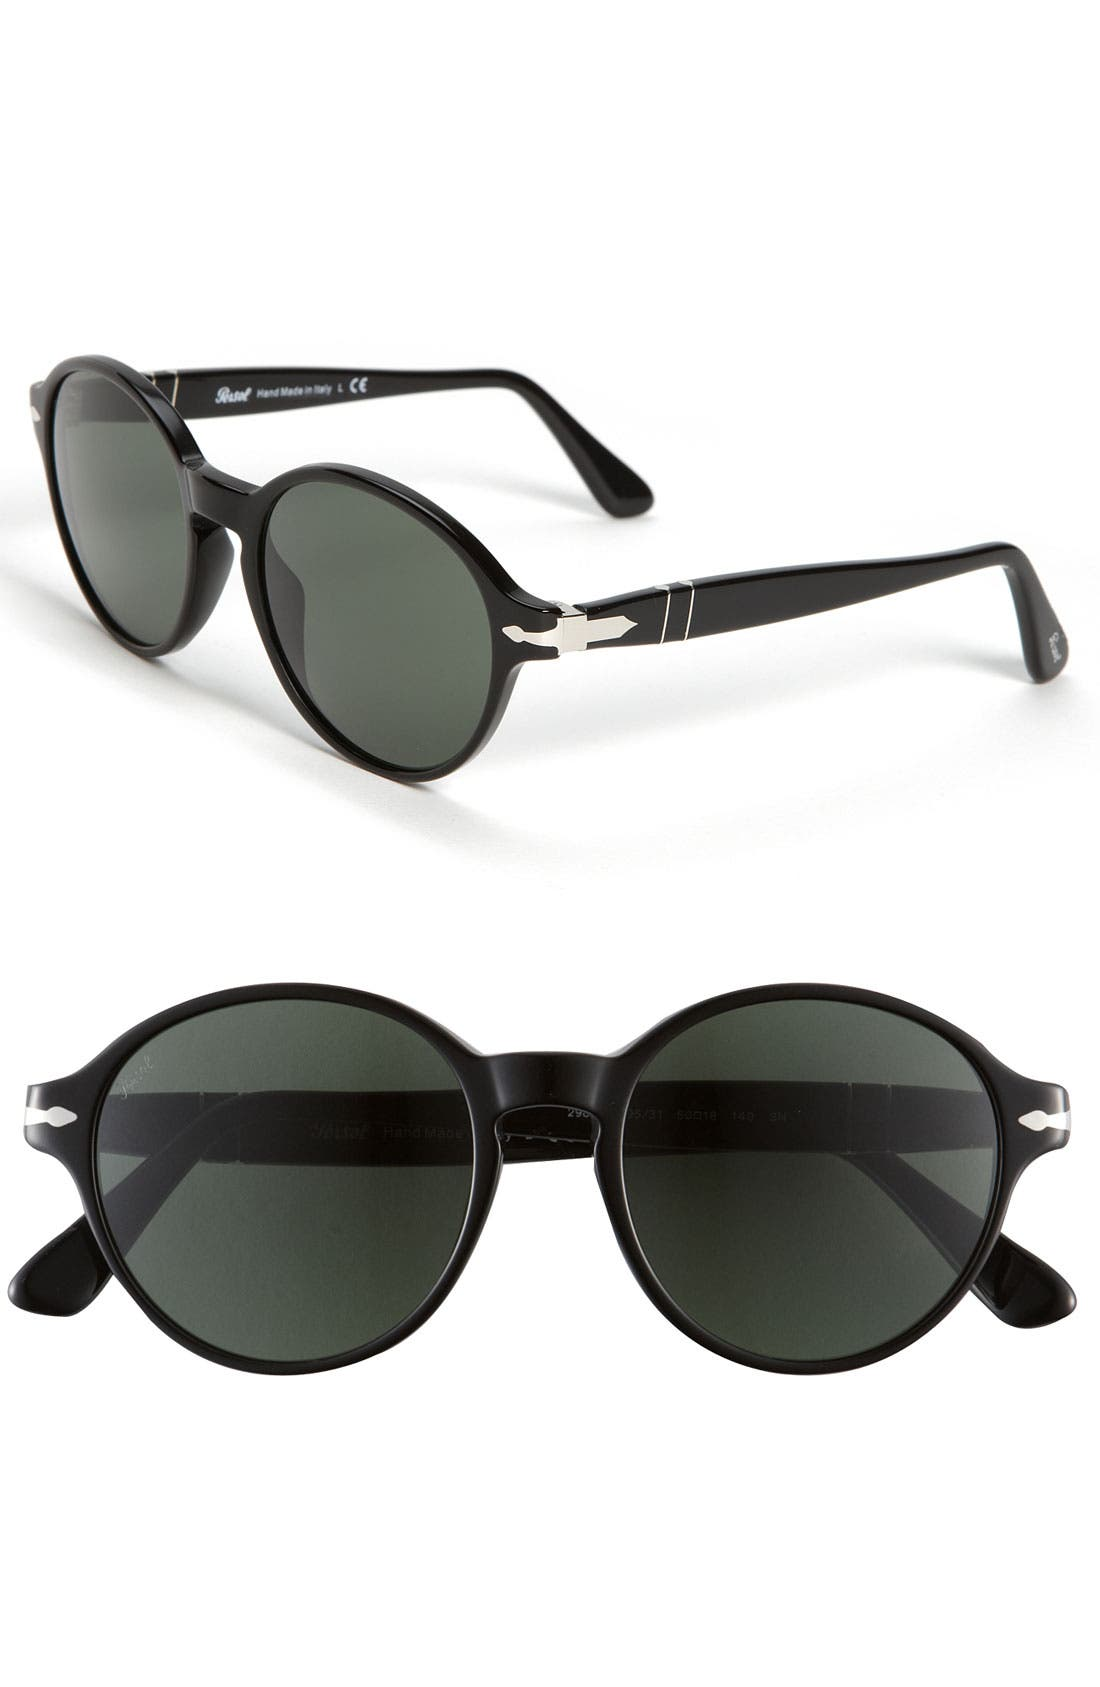 Main Image - Persol Vintage Inspired Sunglasses